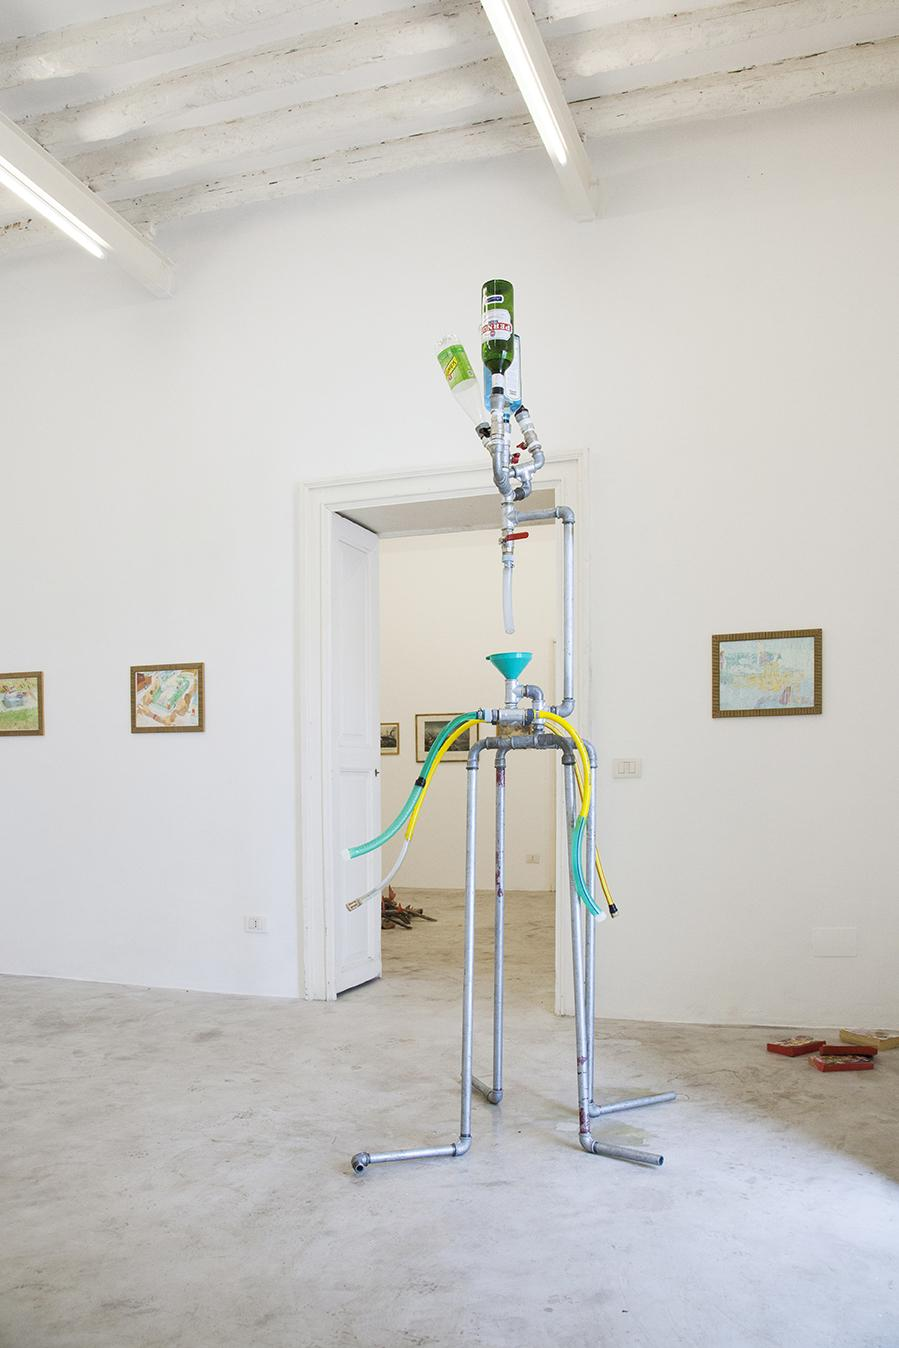 """Giulio Delvè /Moonshining/, 2016 Connections in cast iron, flexible tubes and plumbing equipment, bottles, 220  x 85 x 60cm Installation view """"I Will Go Where I Don't Belong"""" Photo:Giovanna Silva Courtesy Fiorucci Art Trust, London"""